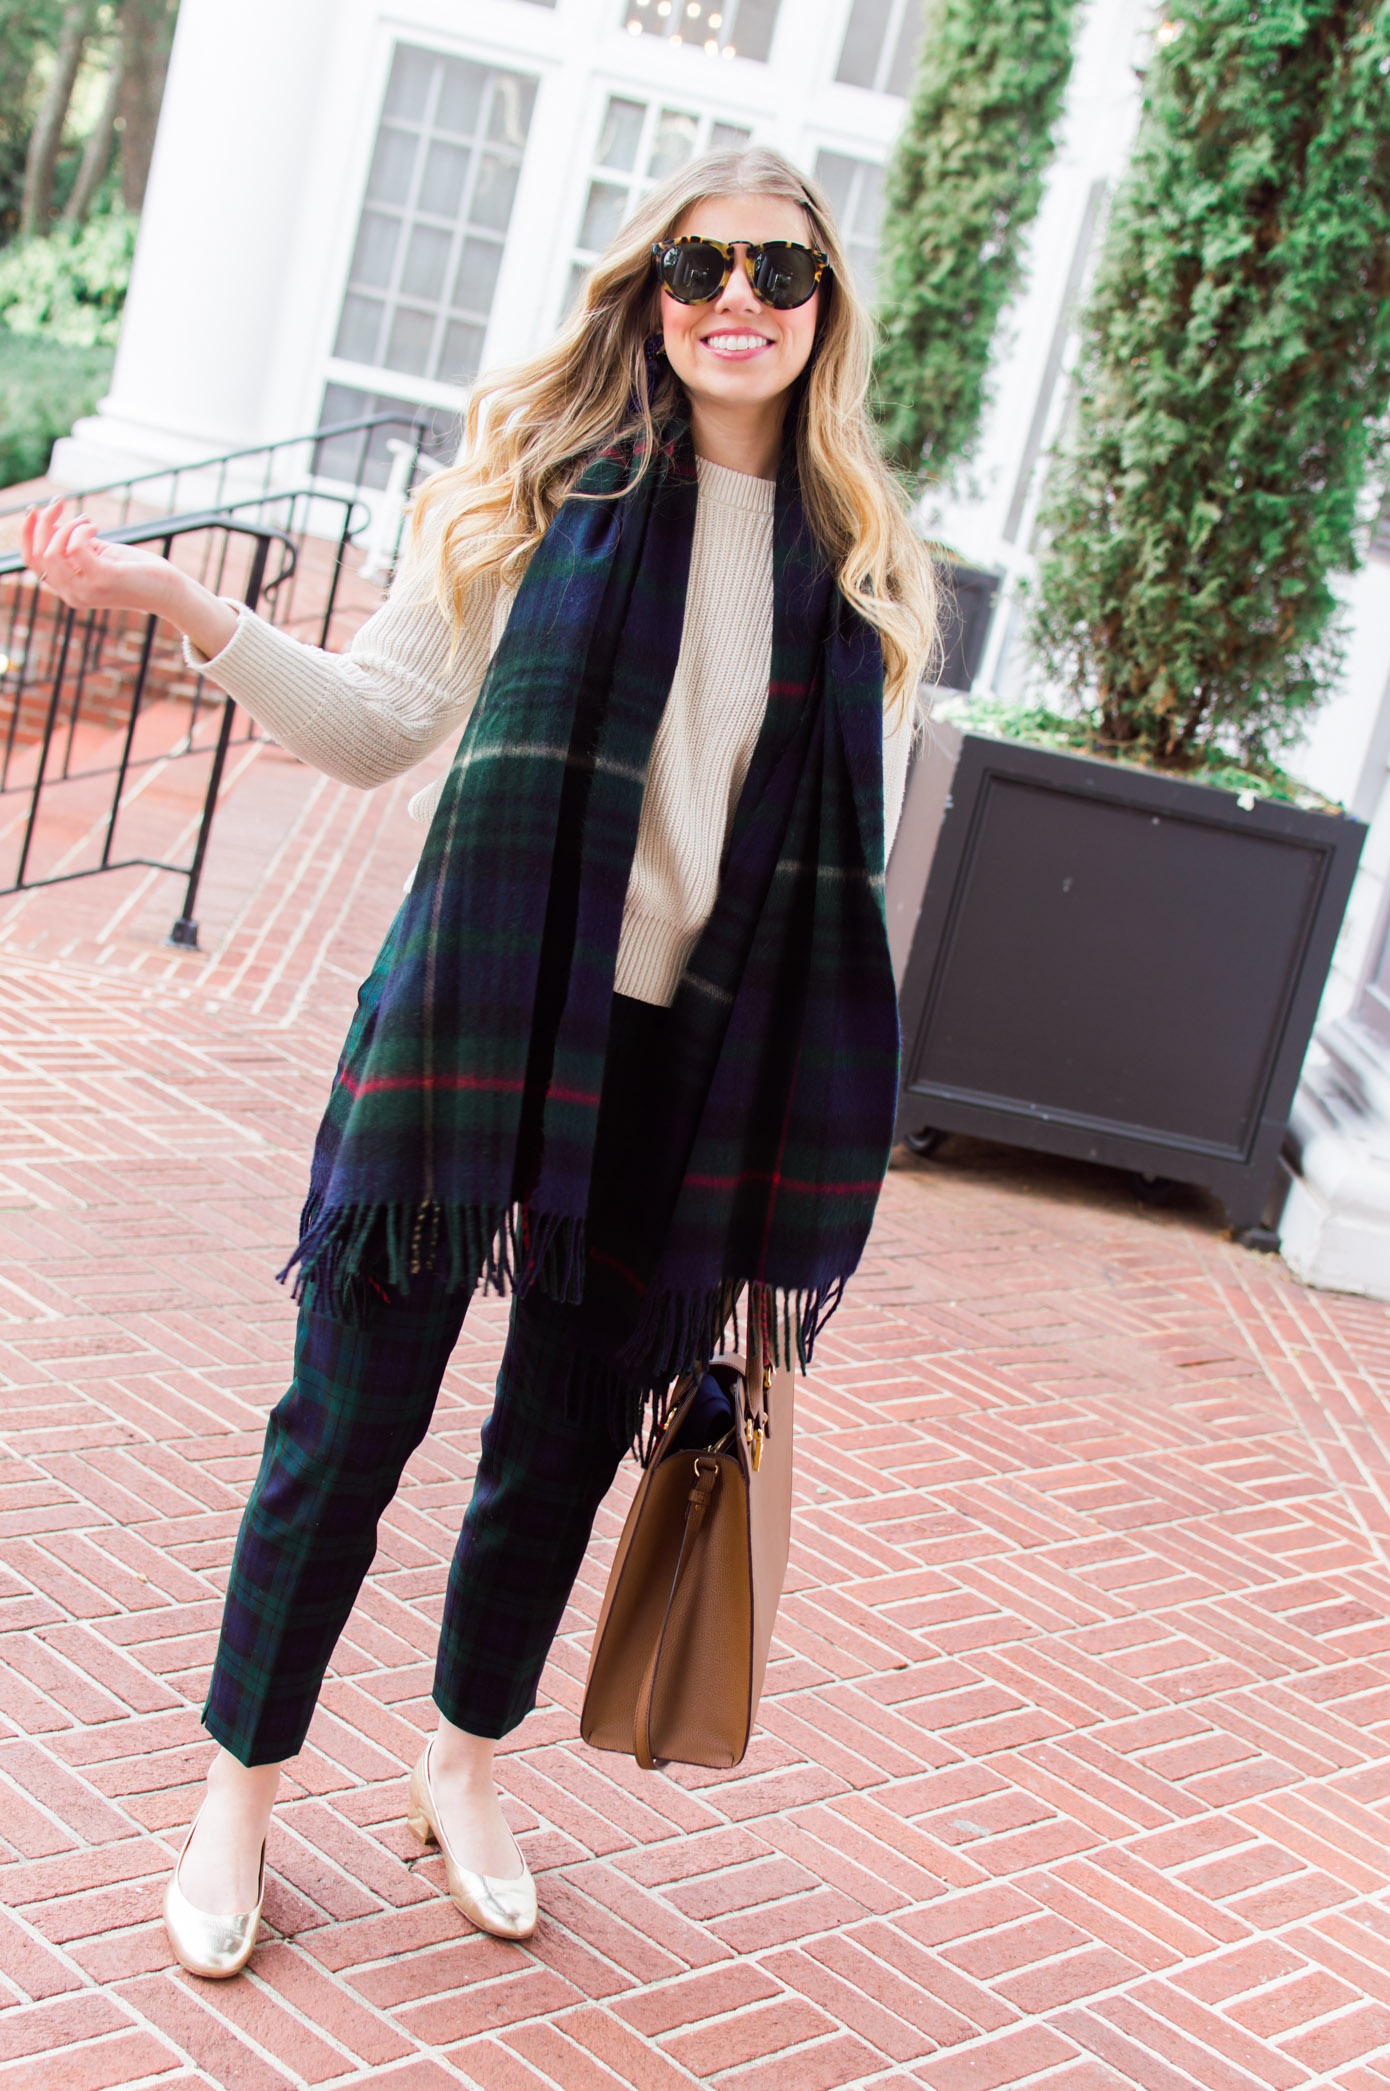 Plaid on Plaid | 10 Ways to Mix Patterns Like a Fashion Blogger | Louella Reese Life & Style Blog